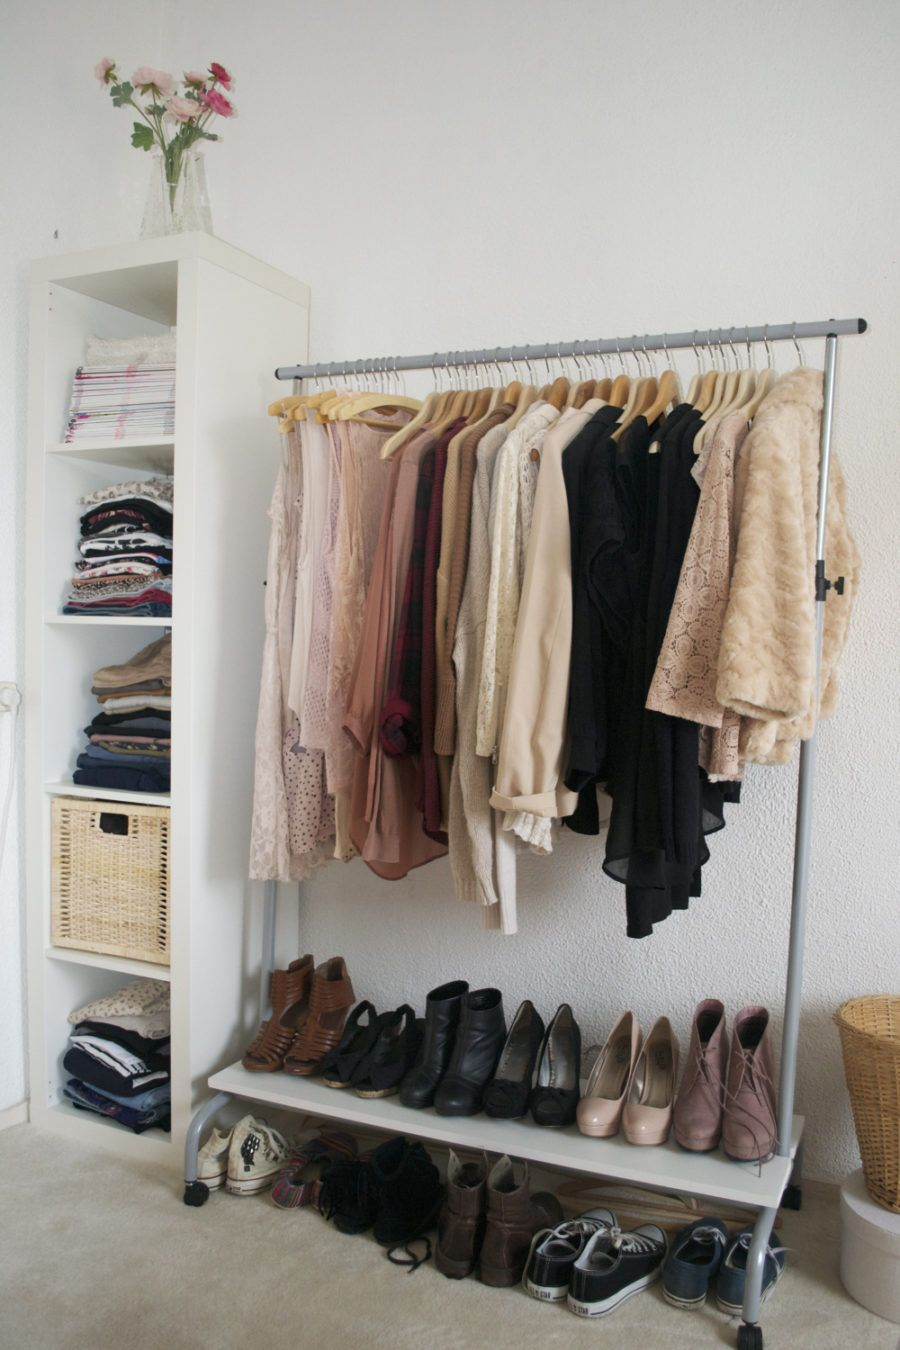 30 Chic And Modern Open Closet Ideas For Displaying Your Wardrobe Closet Bedroom Makeshift Closet Closet Designs,Old Victorian Homes For Sale Cheap California